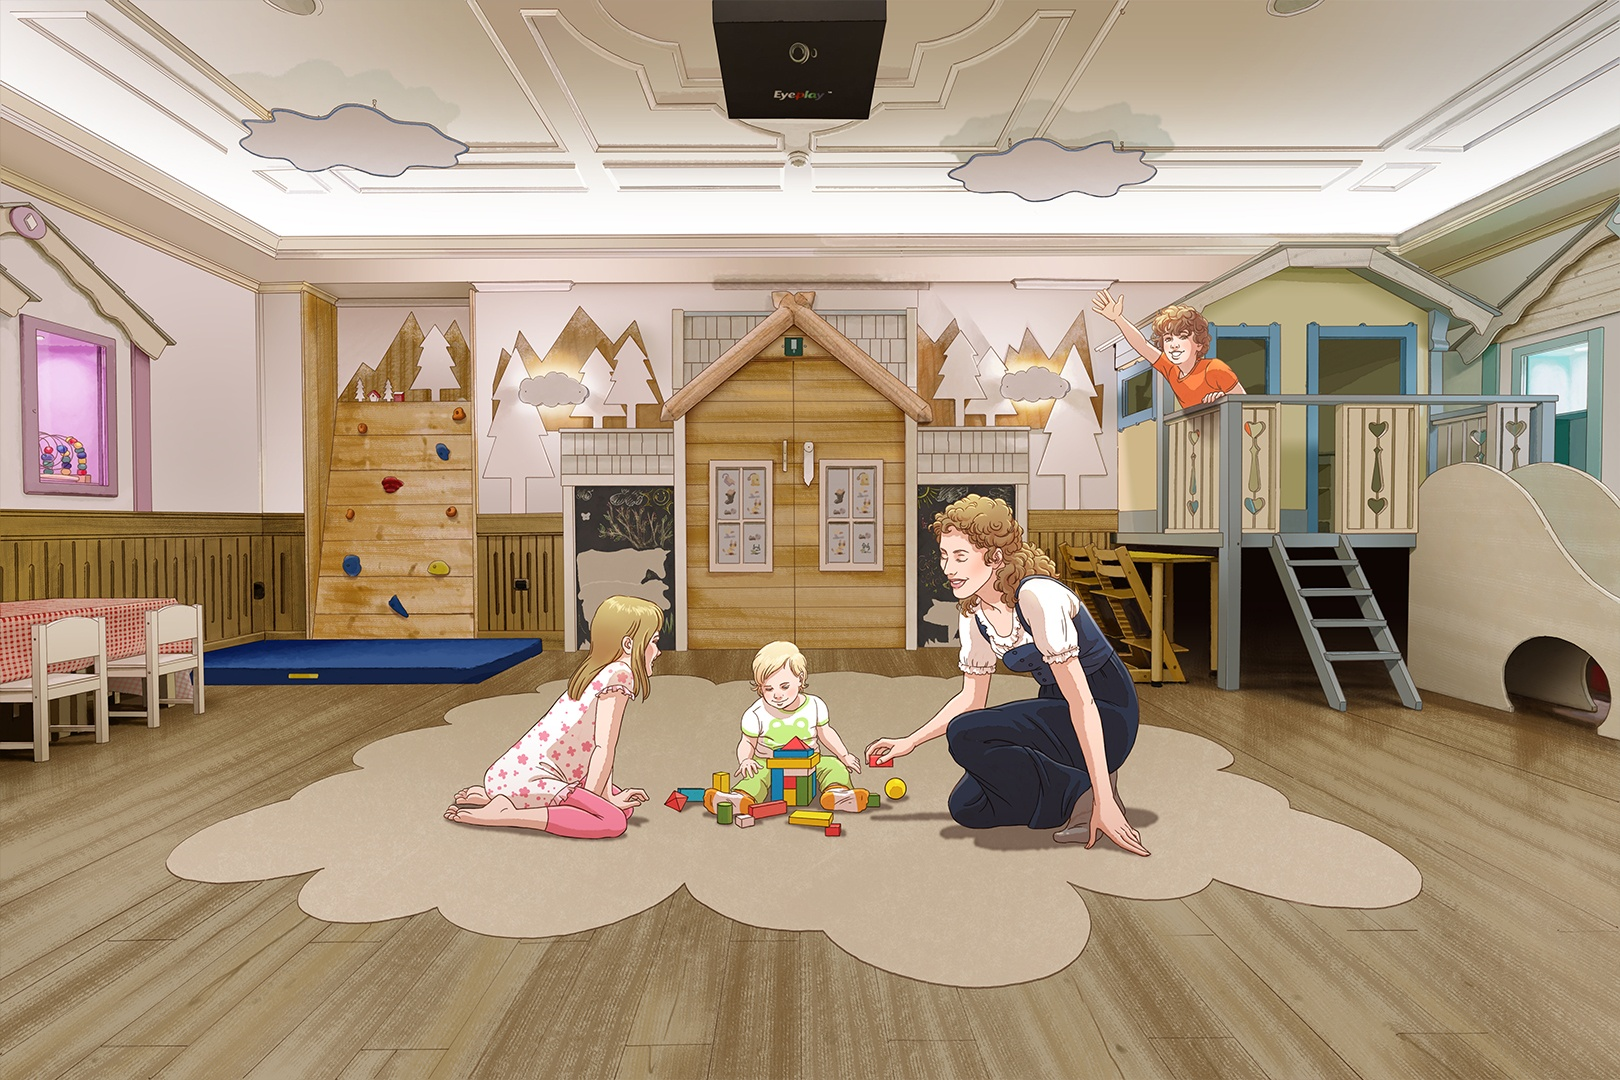 illustration of woman, girl and baby playing on the floor